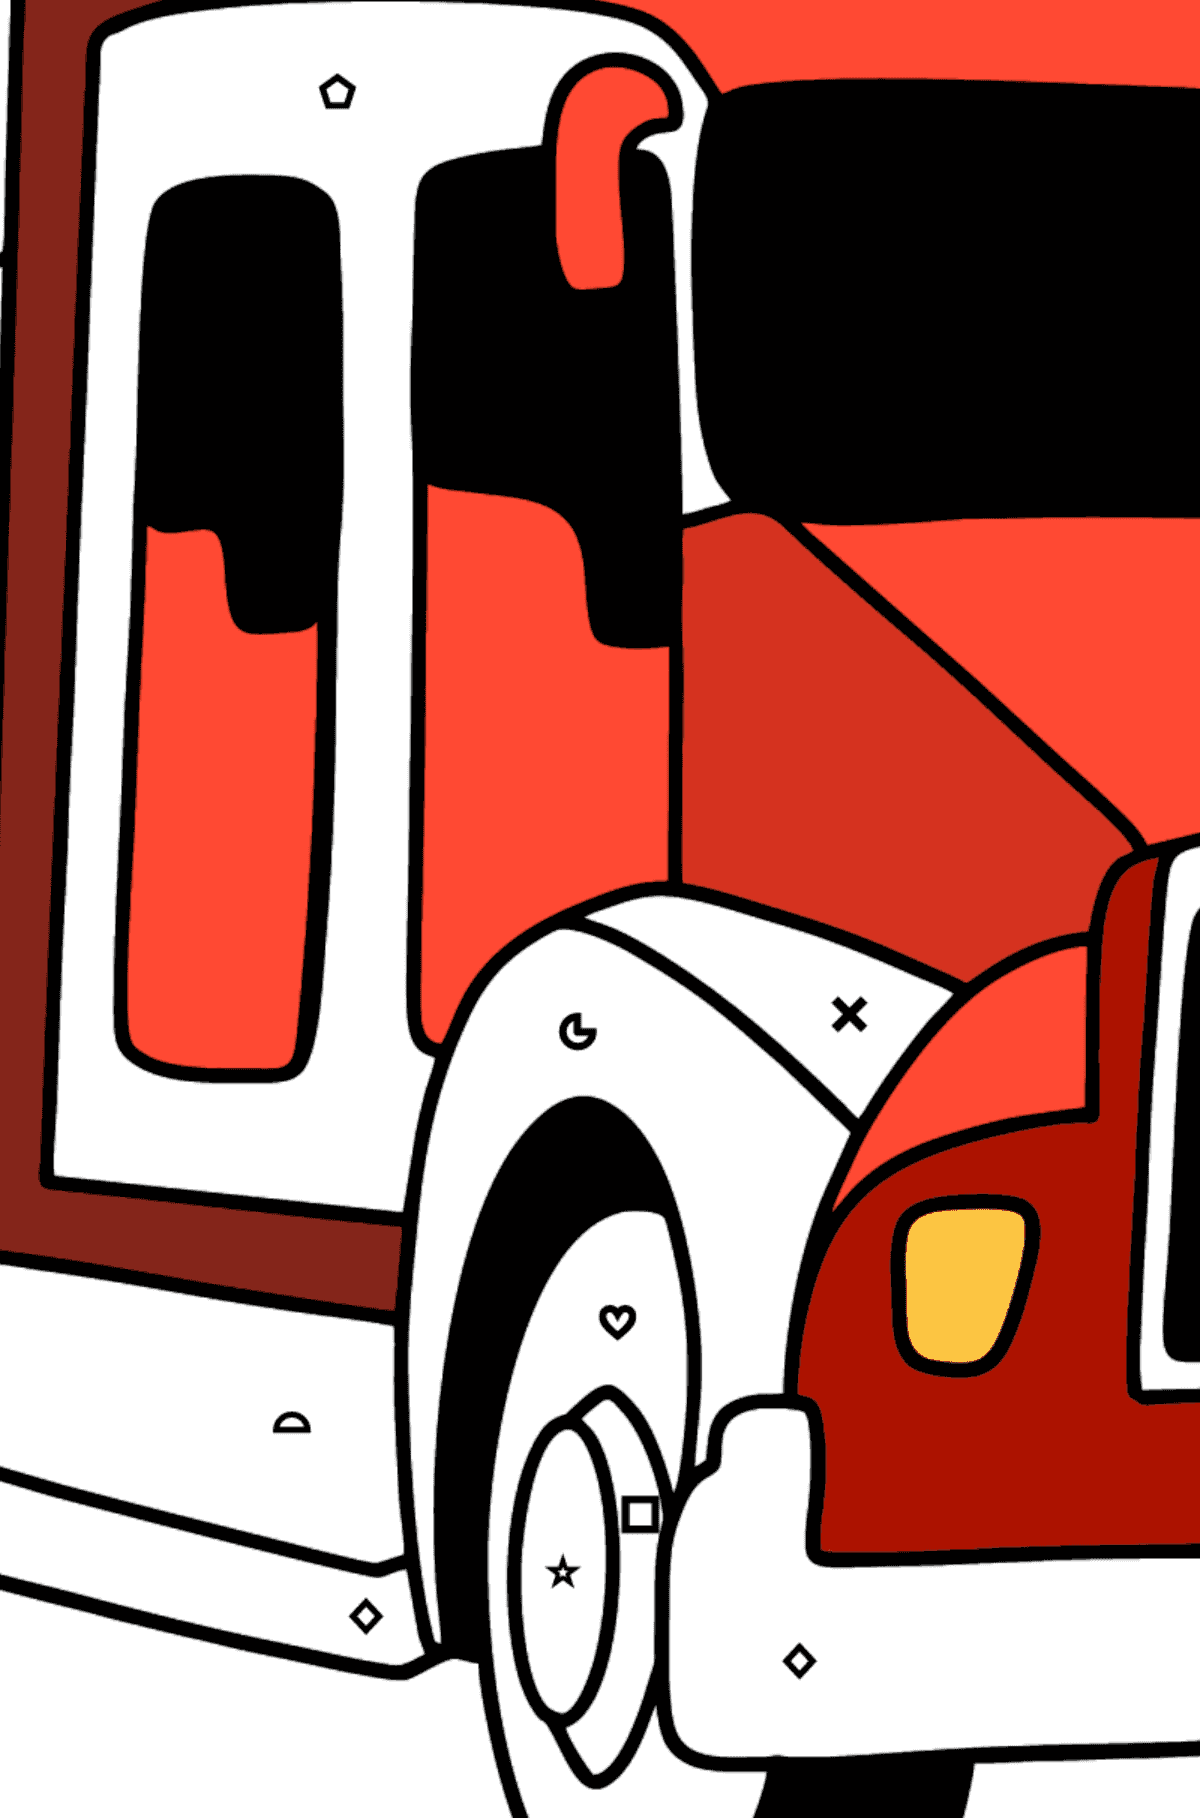 USA Fire Truck coloring page - Coloring by Symbols and Geometric Shapes for Kids